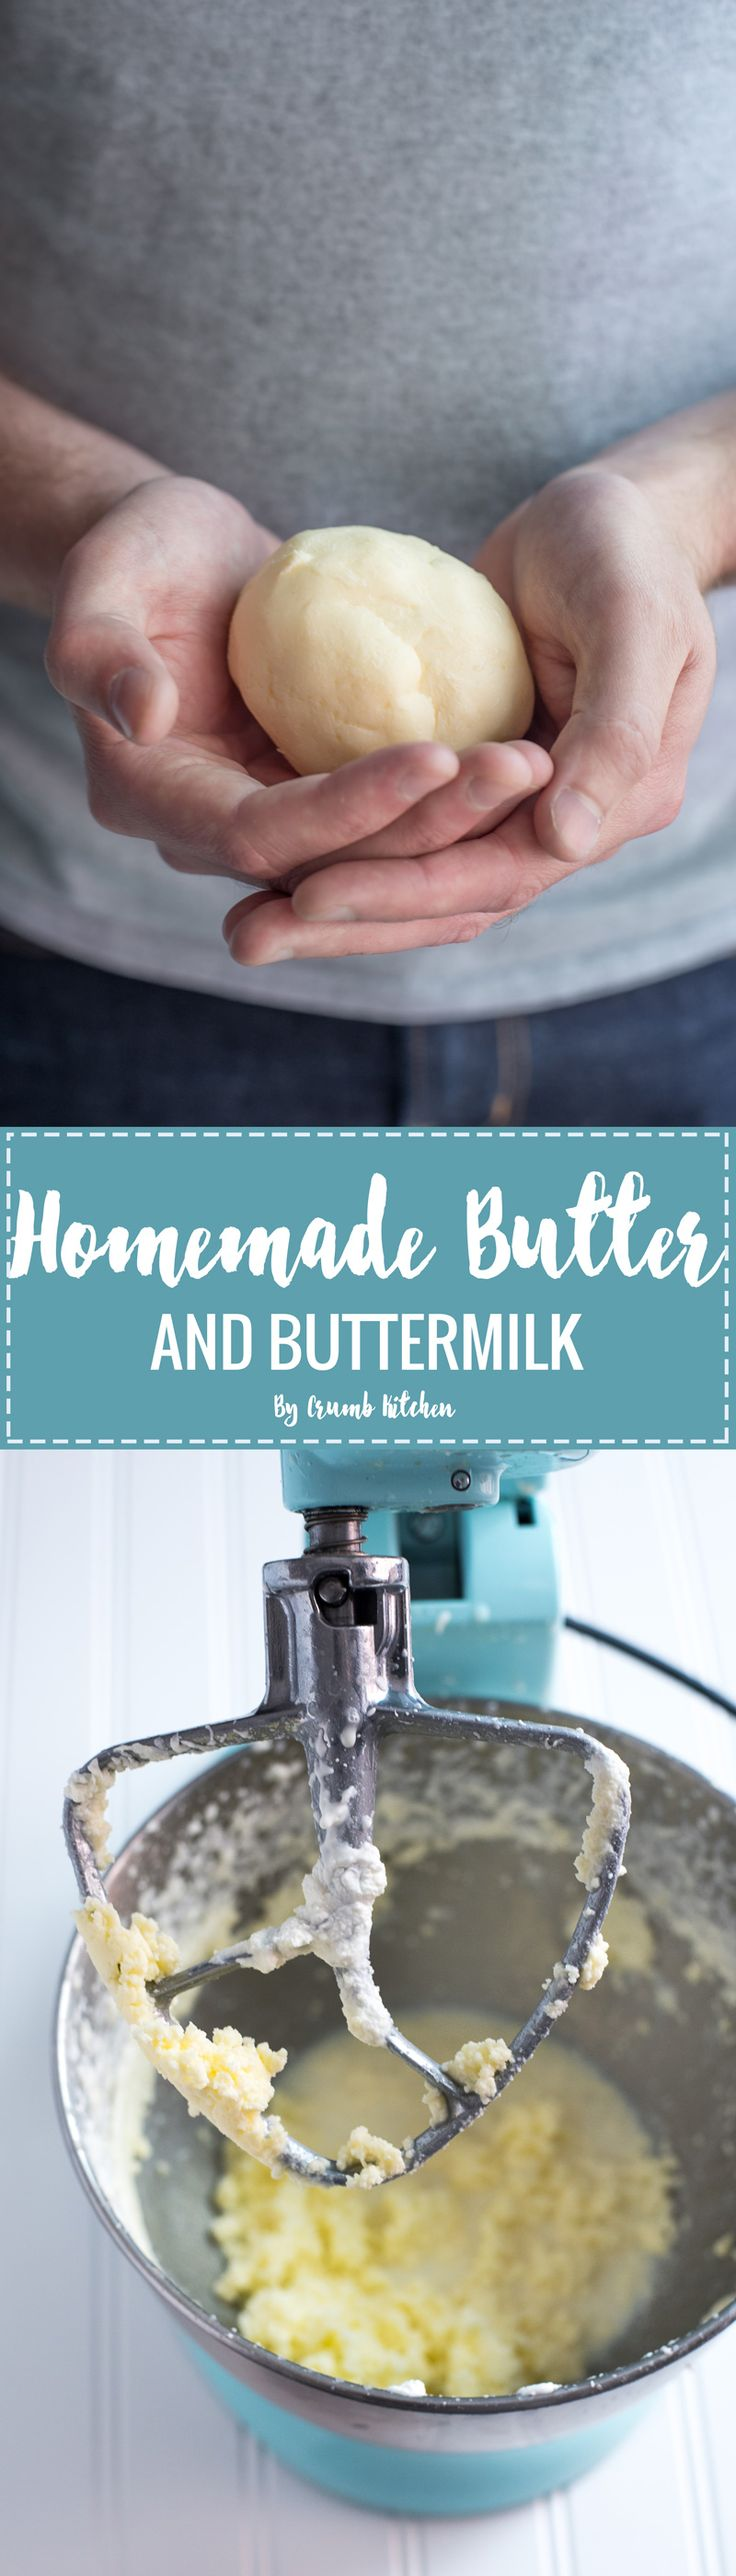 Learn how to make rich, lightly salted homemade butter and buttermilk from only heavy cream and salt in your stand mixer. | Crumb Kitchen